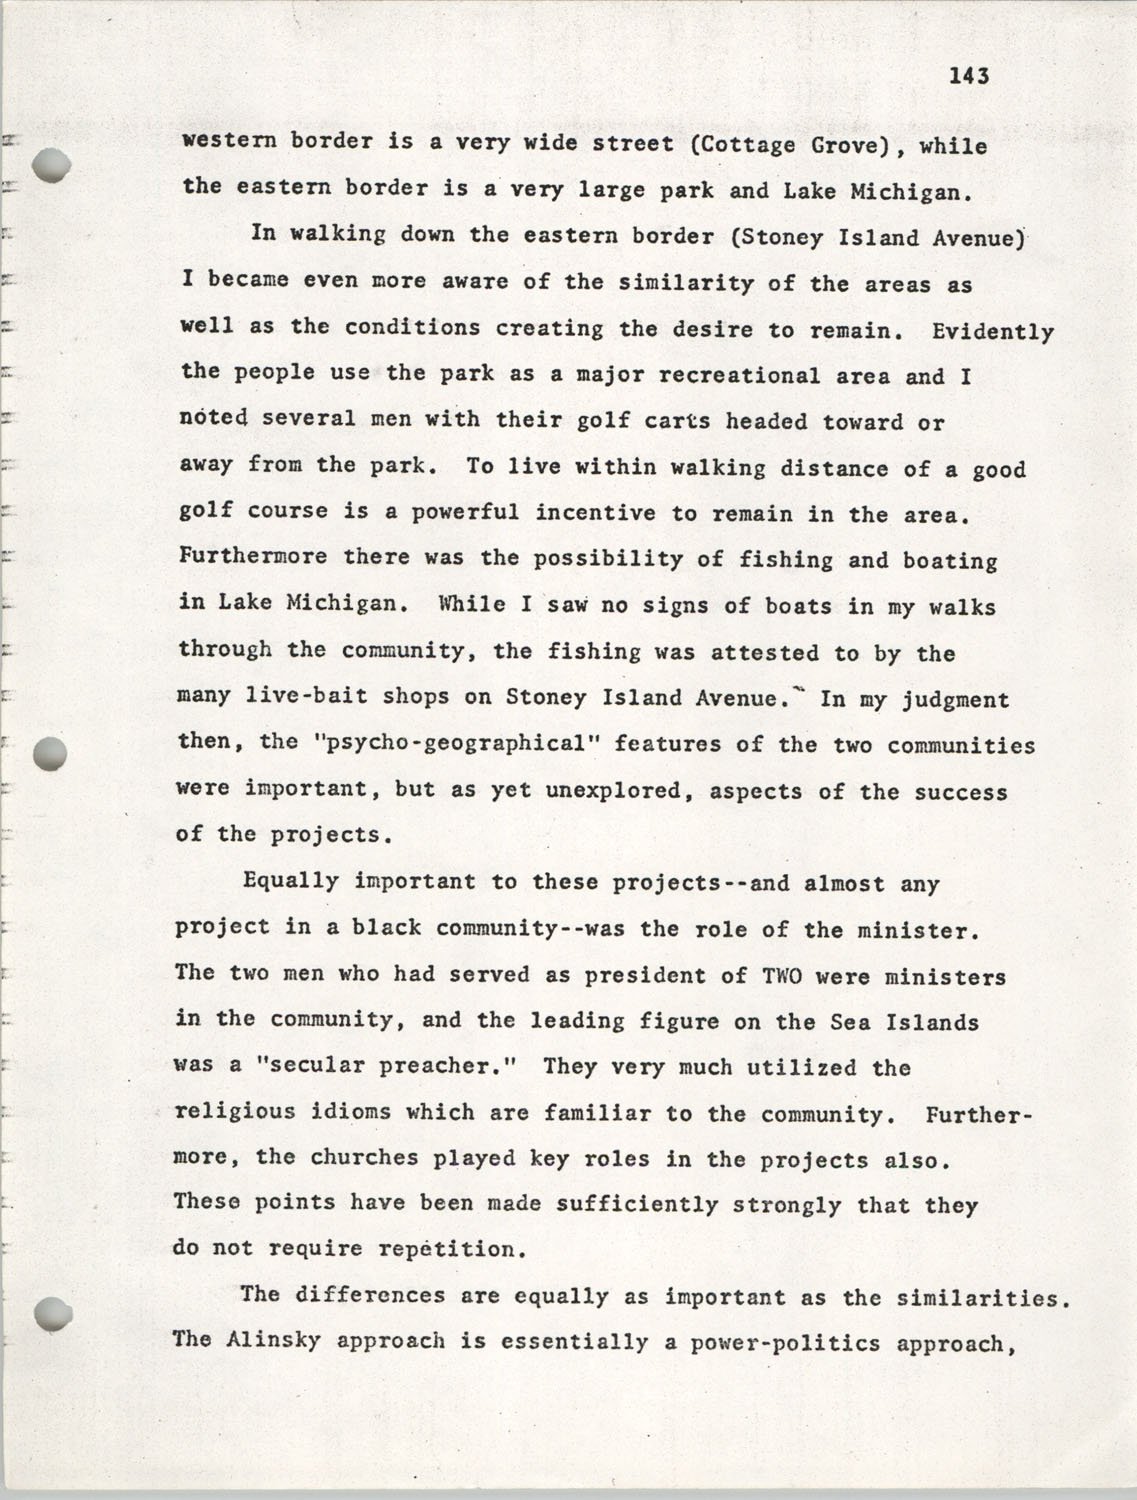 Citizen Participation. Democracy and Social Change, December 1, 1969, Page 143